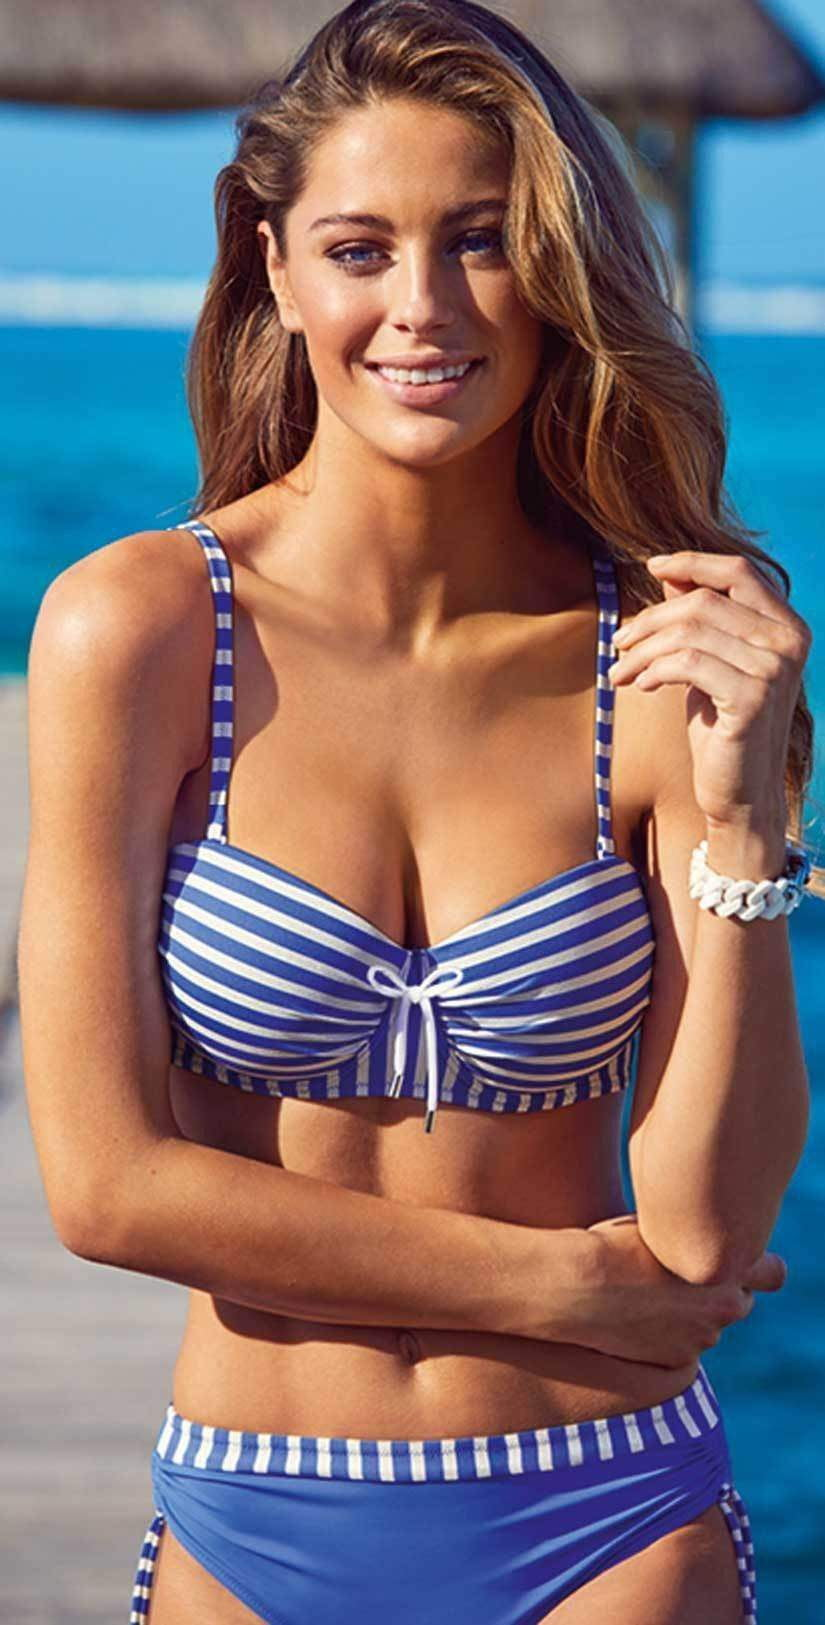 Lidea Barbados Underwire Bikini Set in Stripe 7883-670-950: